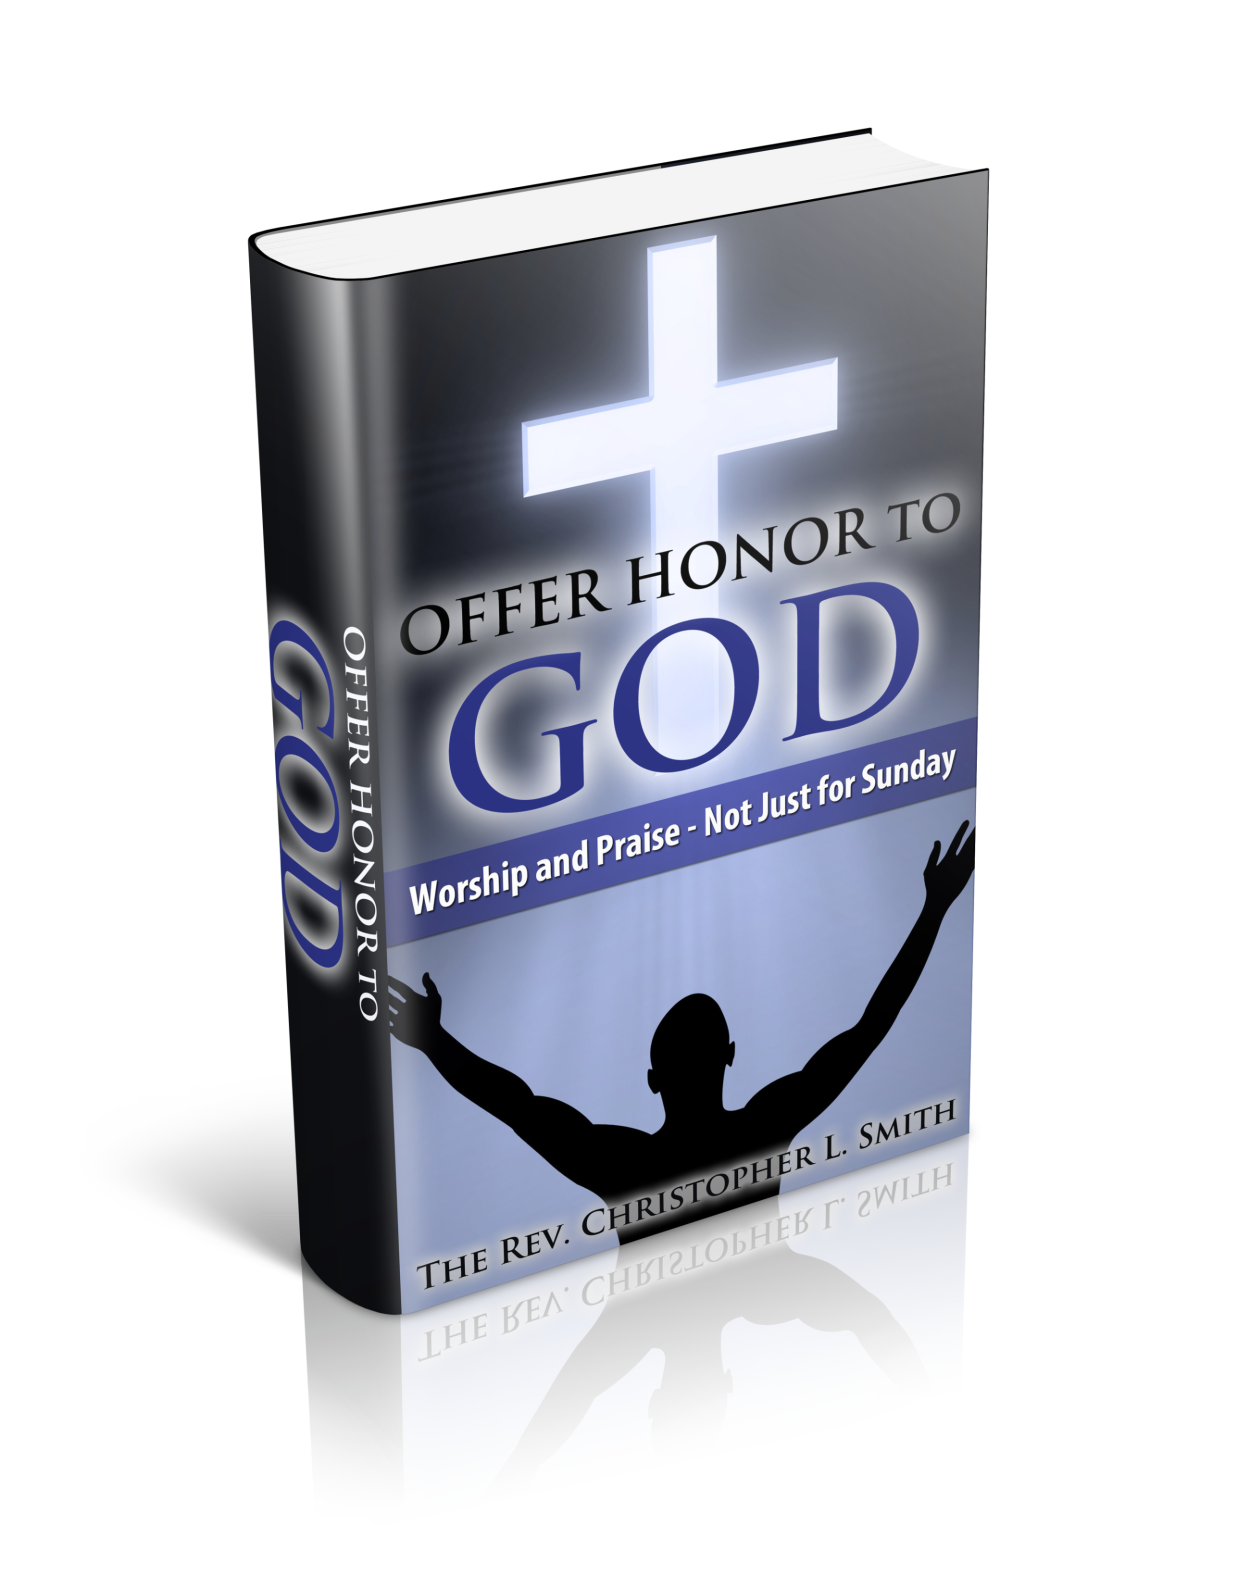 Offer Honor to God - book image